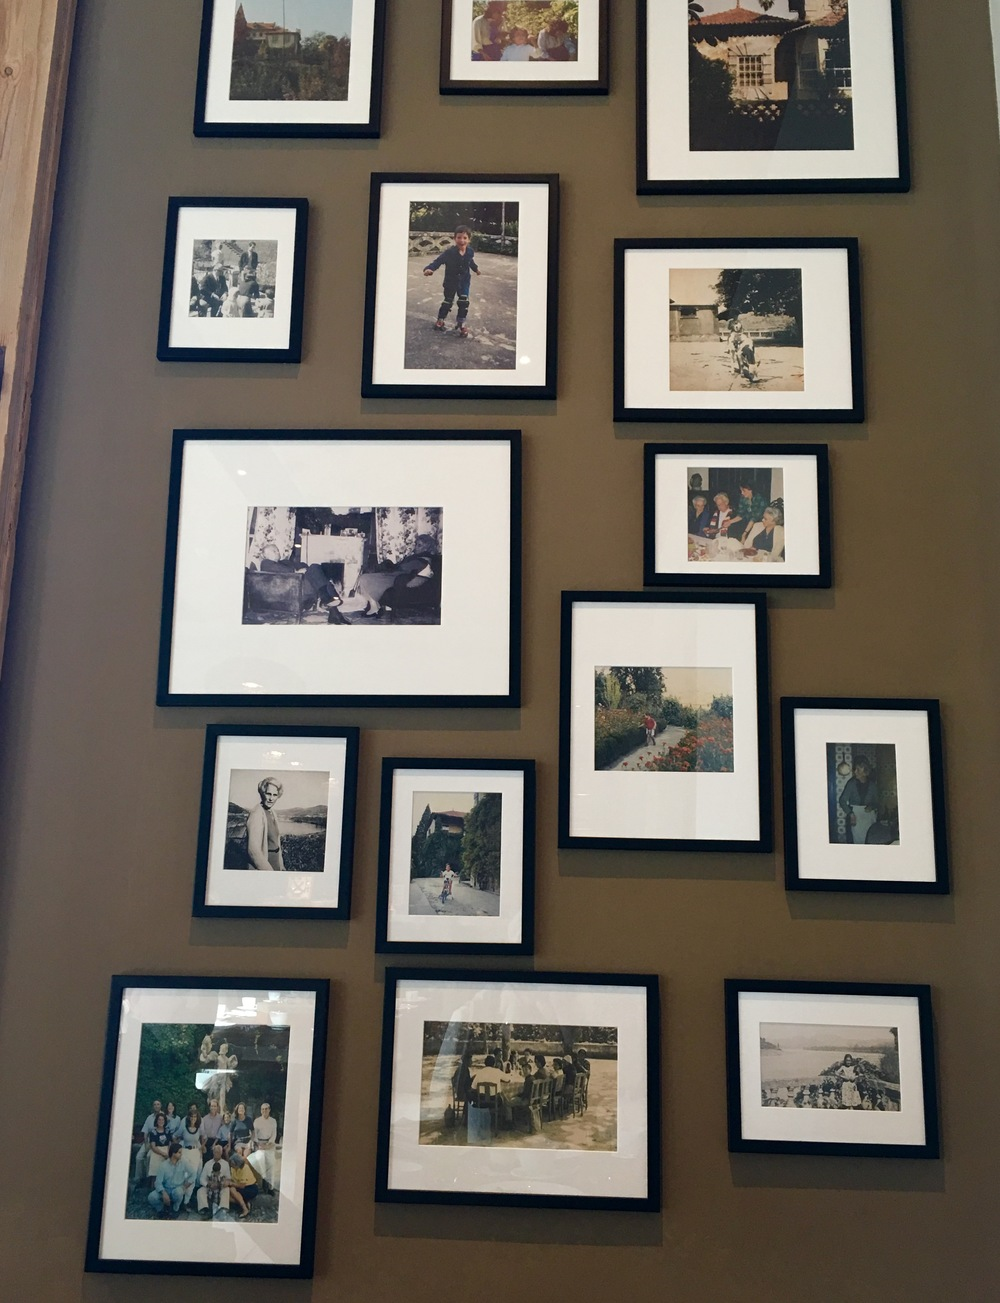 Original framed photographs of the previous owners of the manor house.